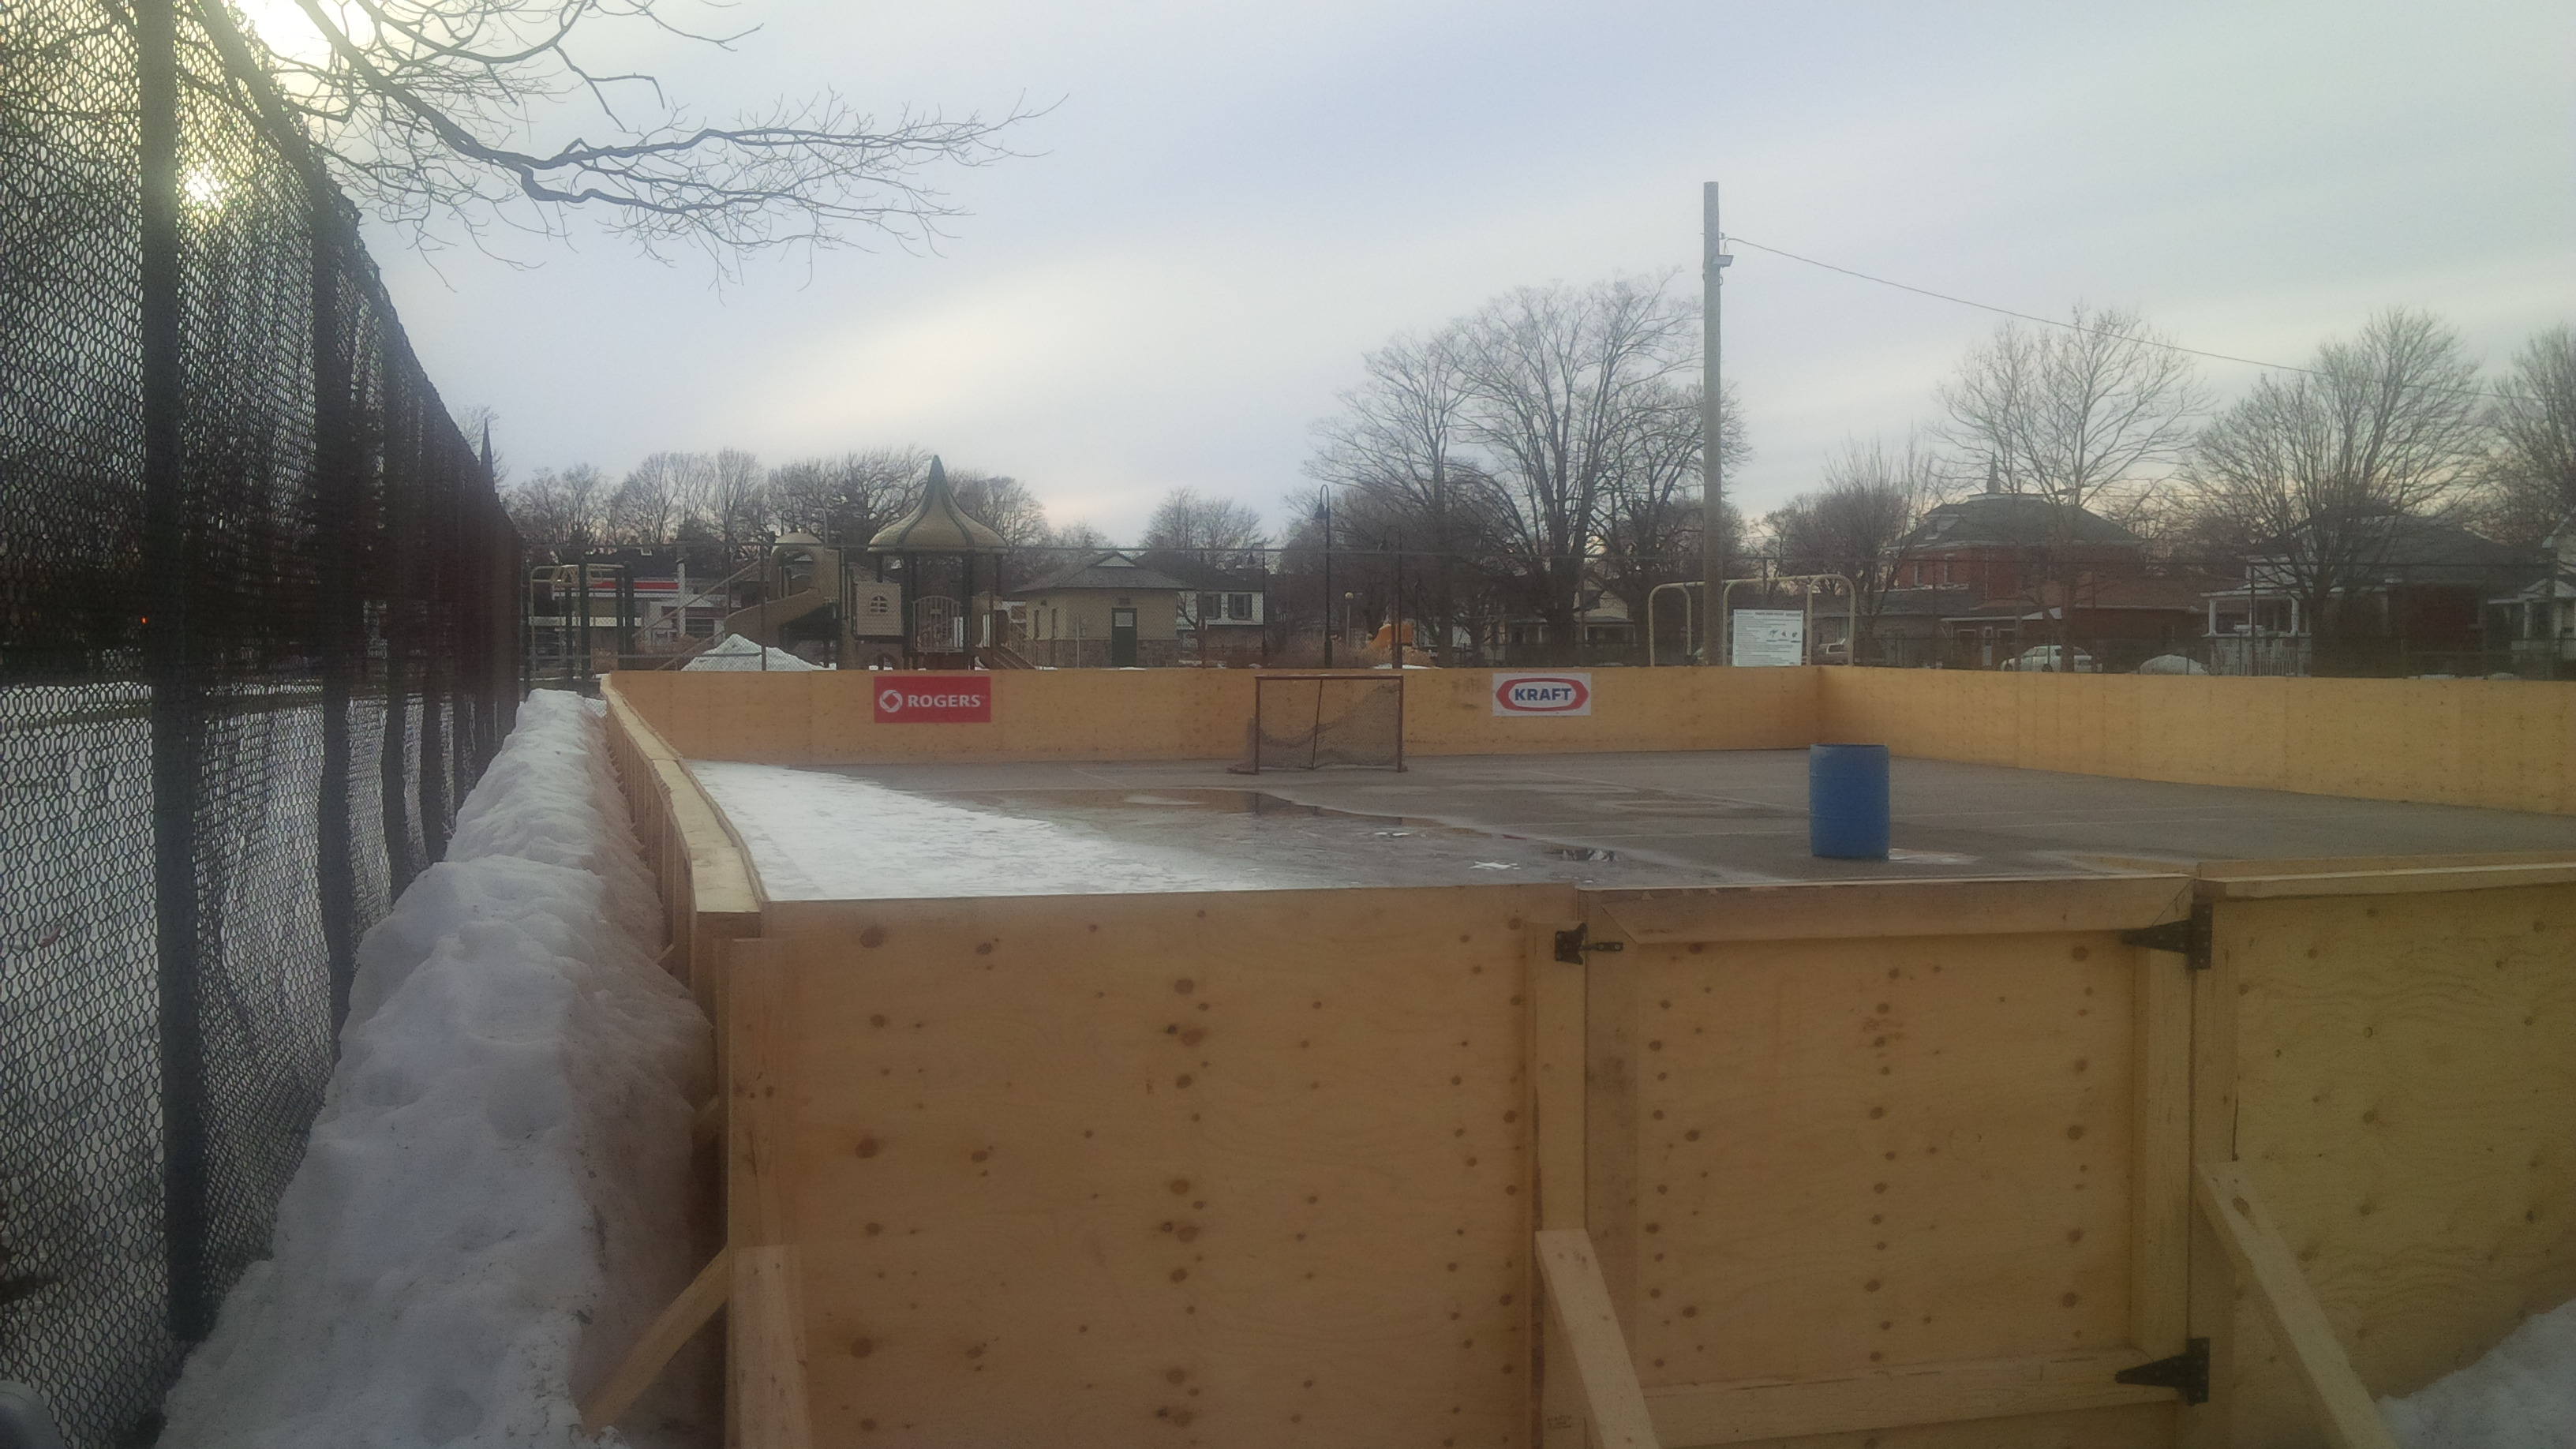 Blackburn News file photo of an outdoor skating rink in Goderich. (Photo by Bob Montgomery)